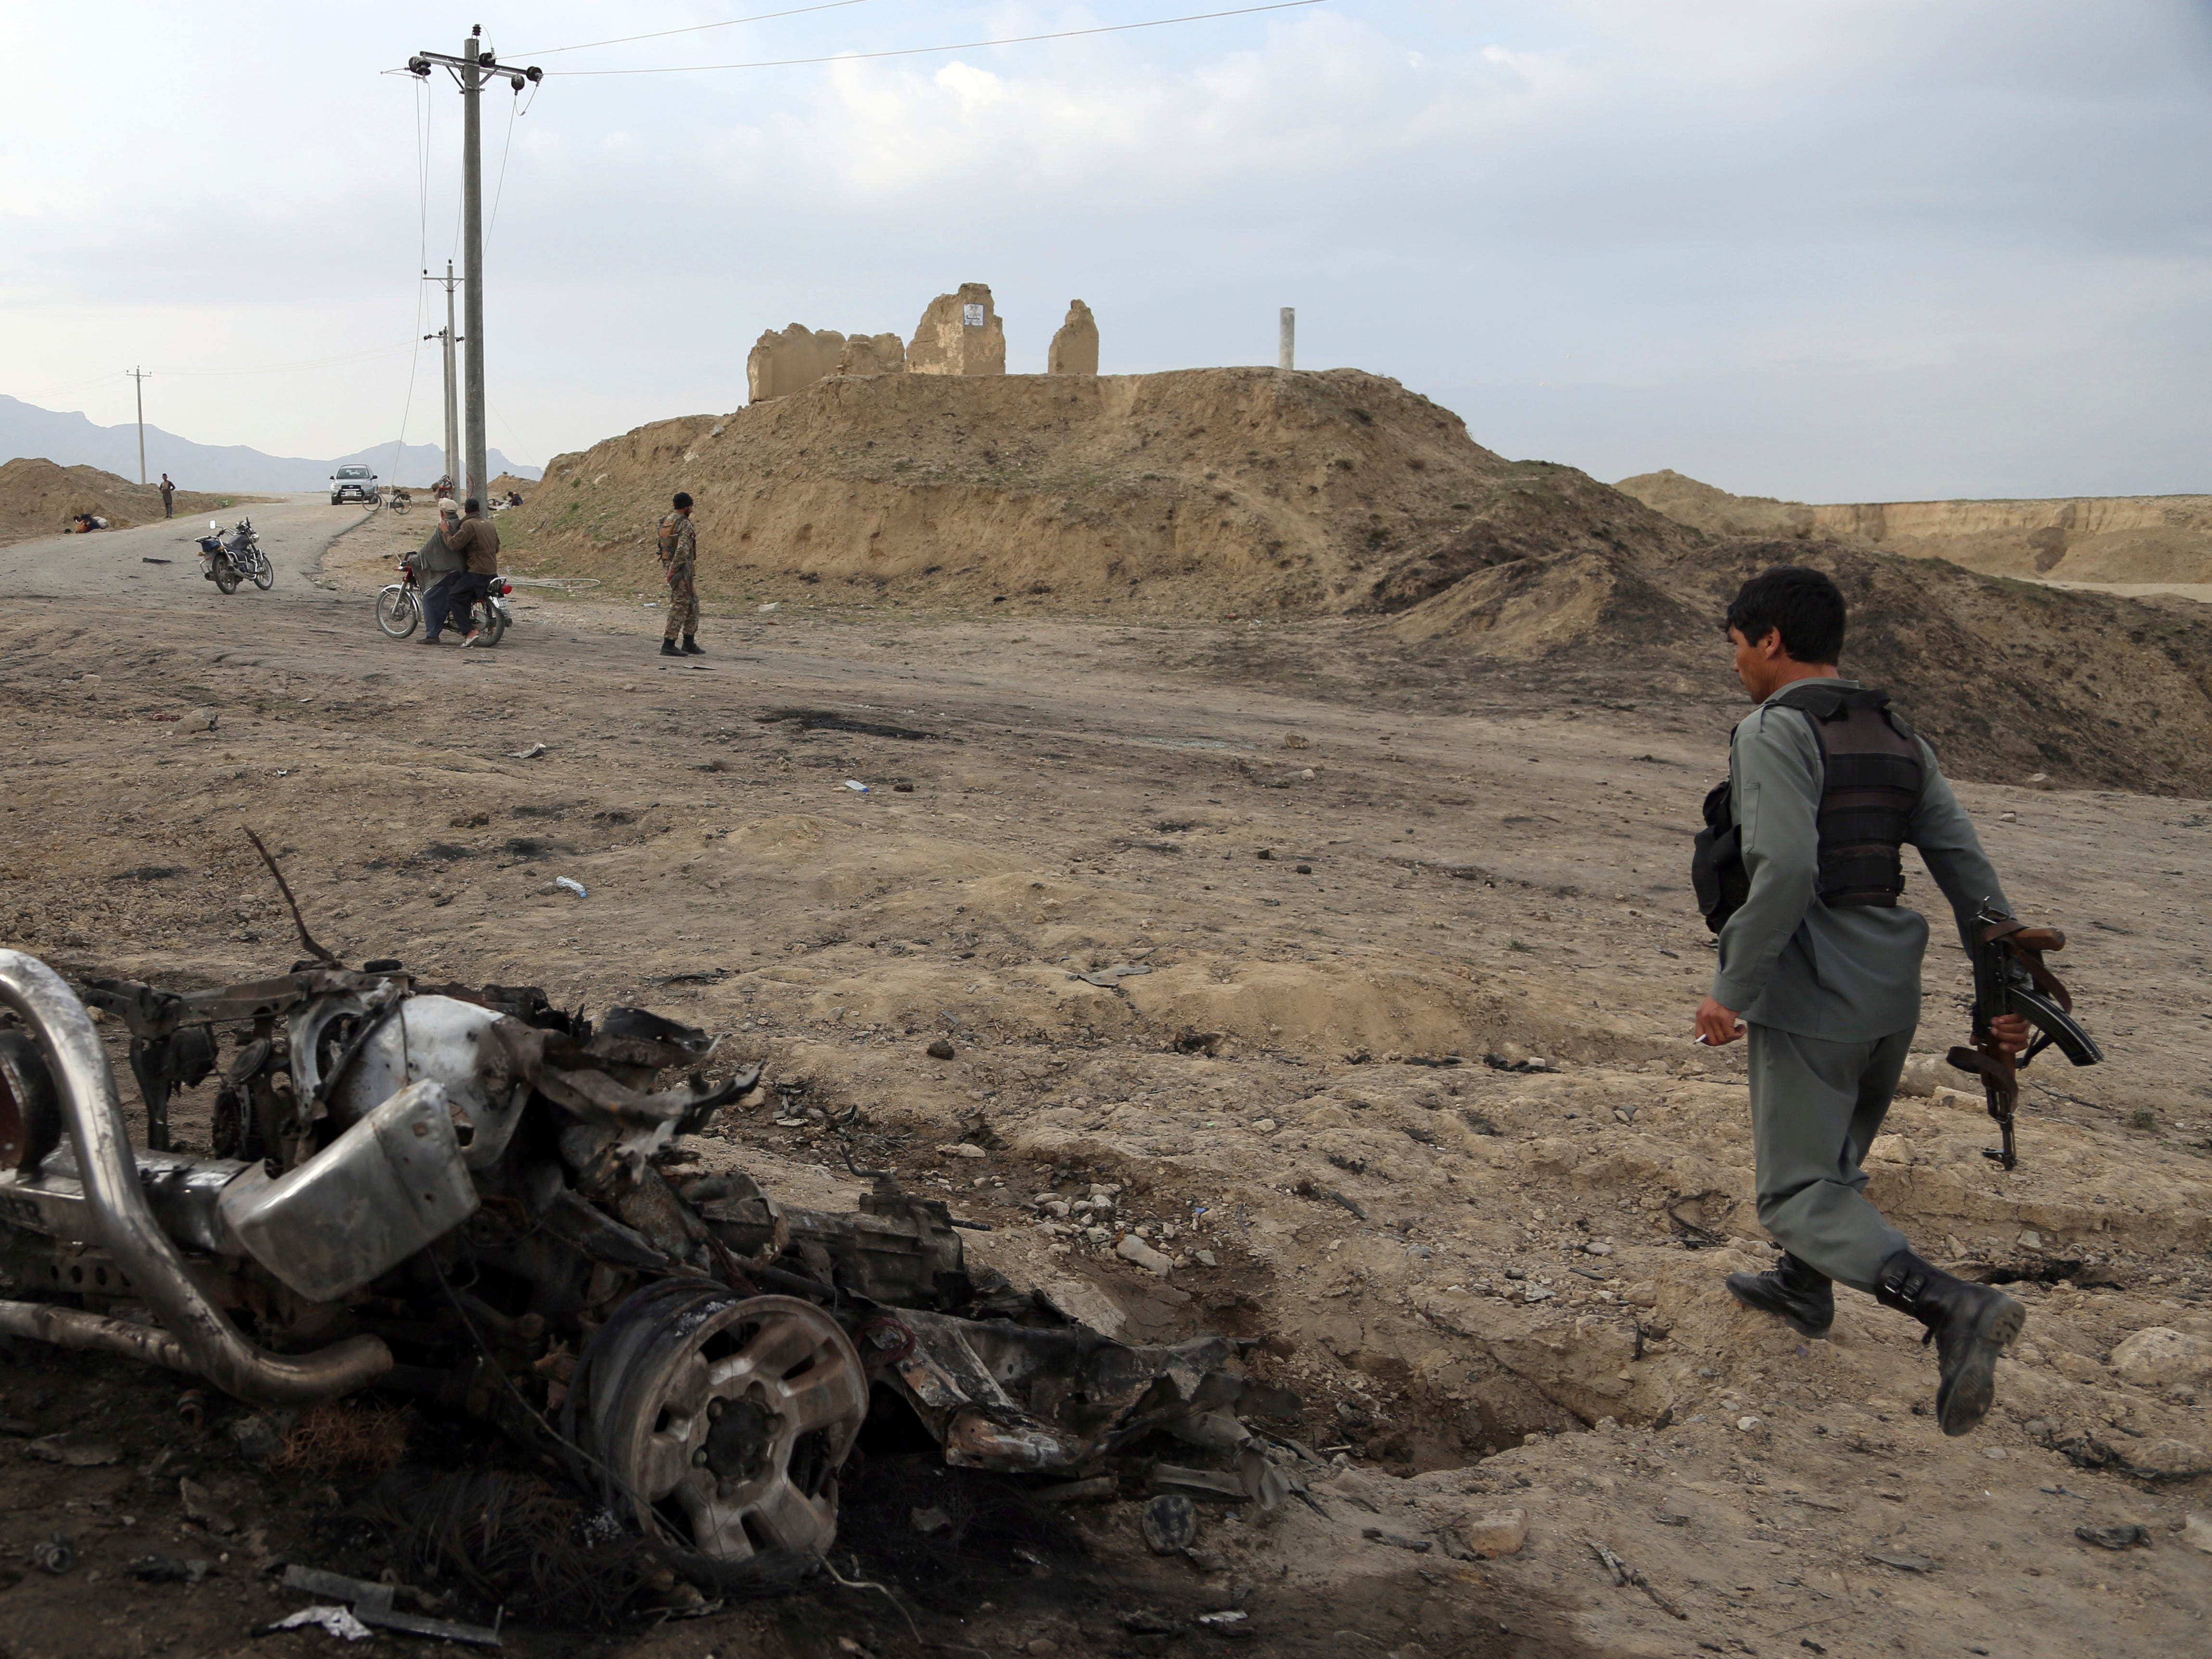 Afghan security forces gather at the site of Monday's attack near the Bagram Air Base, north of Kabul, Afghanistan, Tuesday, April 9, 2019. Three American service members and a U.S. contractor were killed when their convoy hit a roadside bomb near the main U.S. base in Afghanistan, the U.S. forces said. The Taliban claimed responsibility.